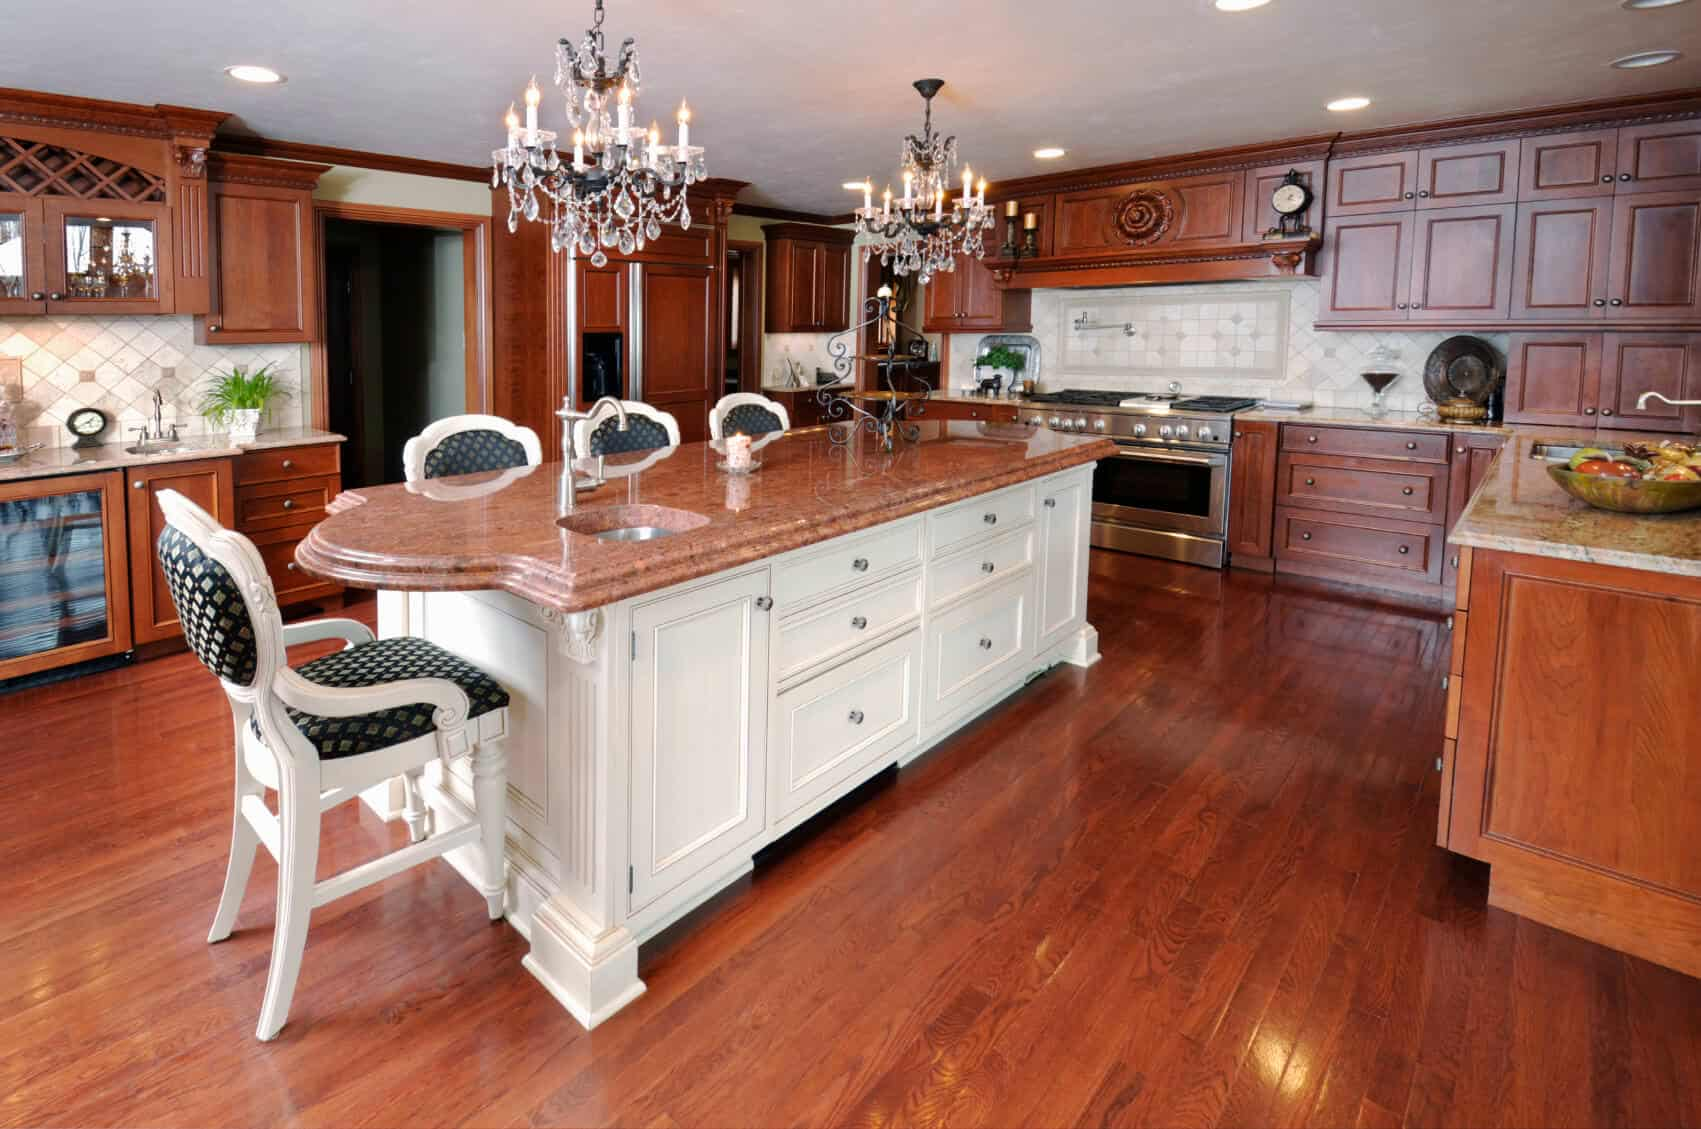 White island with rosy marble countertop under dual chandeliers stands apart in this natural wood toned kitchen.